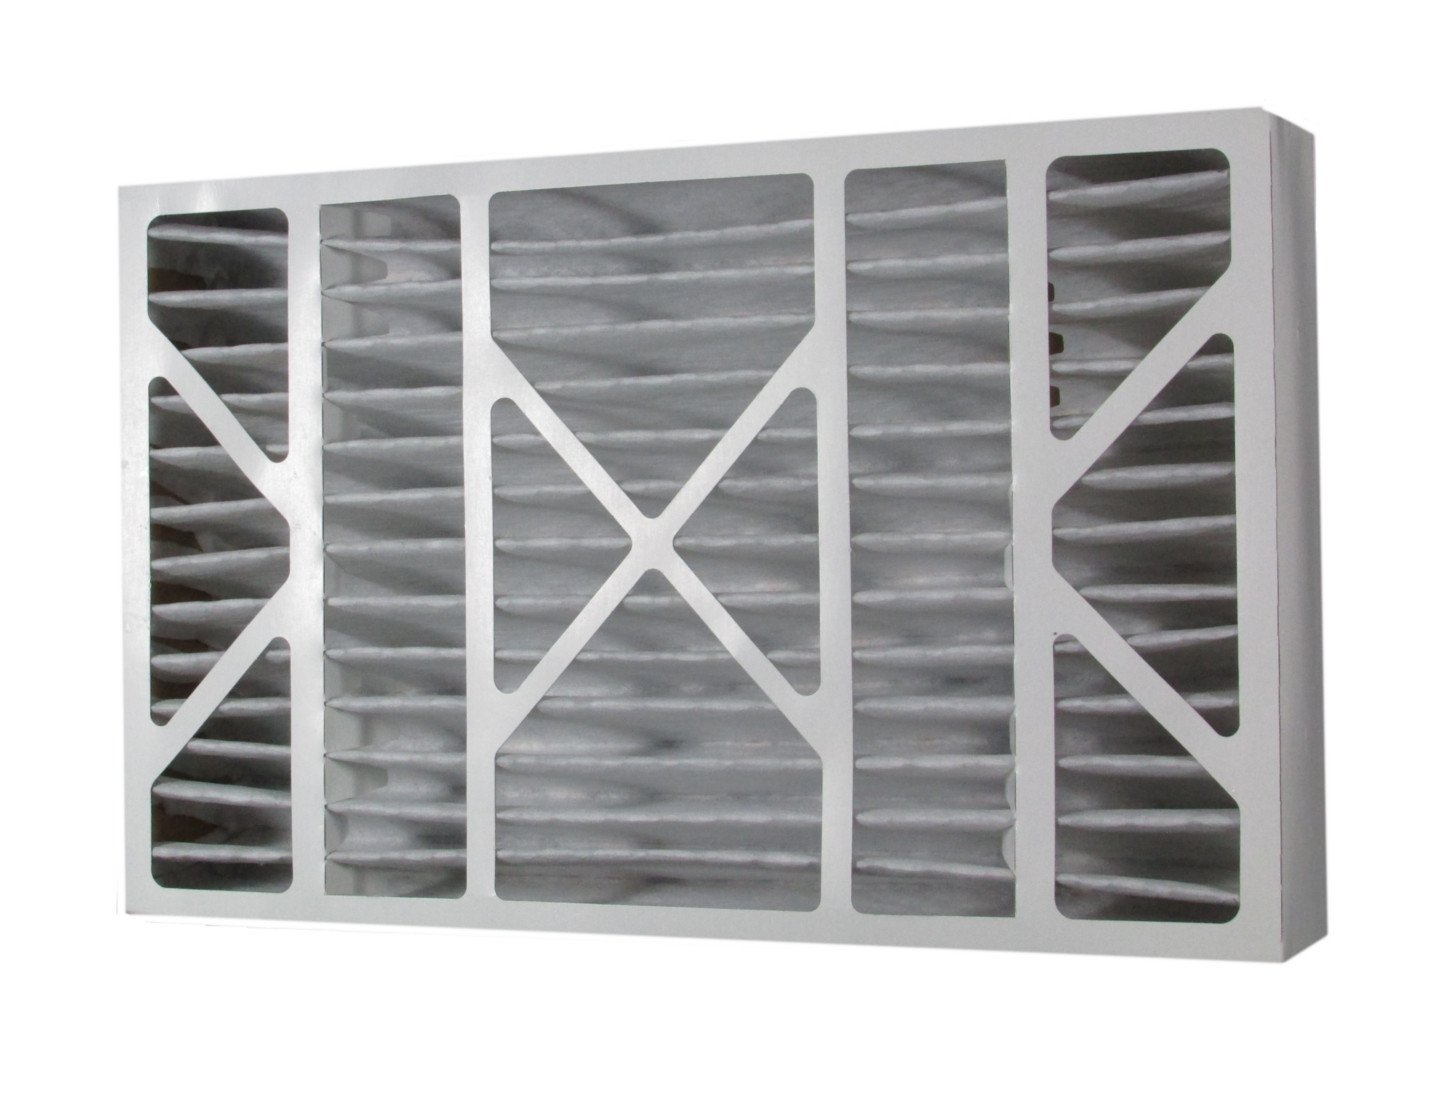 carrier gapcccar1625. bryant / carrier direct replacement filter for expxxfil0016 (2-pack)(5-1625) by magnet filtersusa: furnace filters: amazon.com: industrial \u0026 gapcccar1625